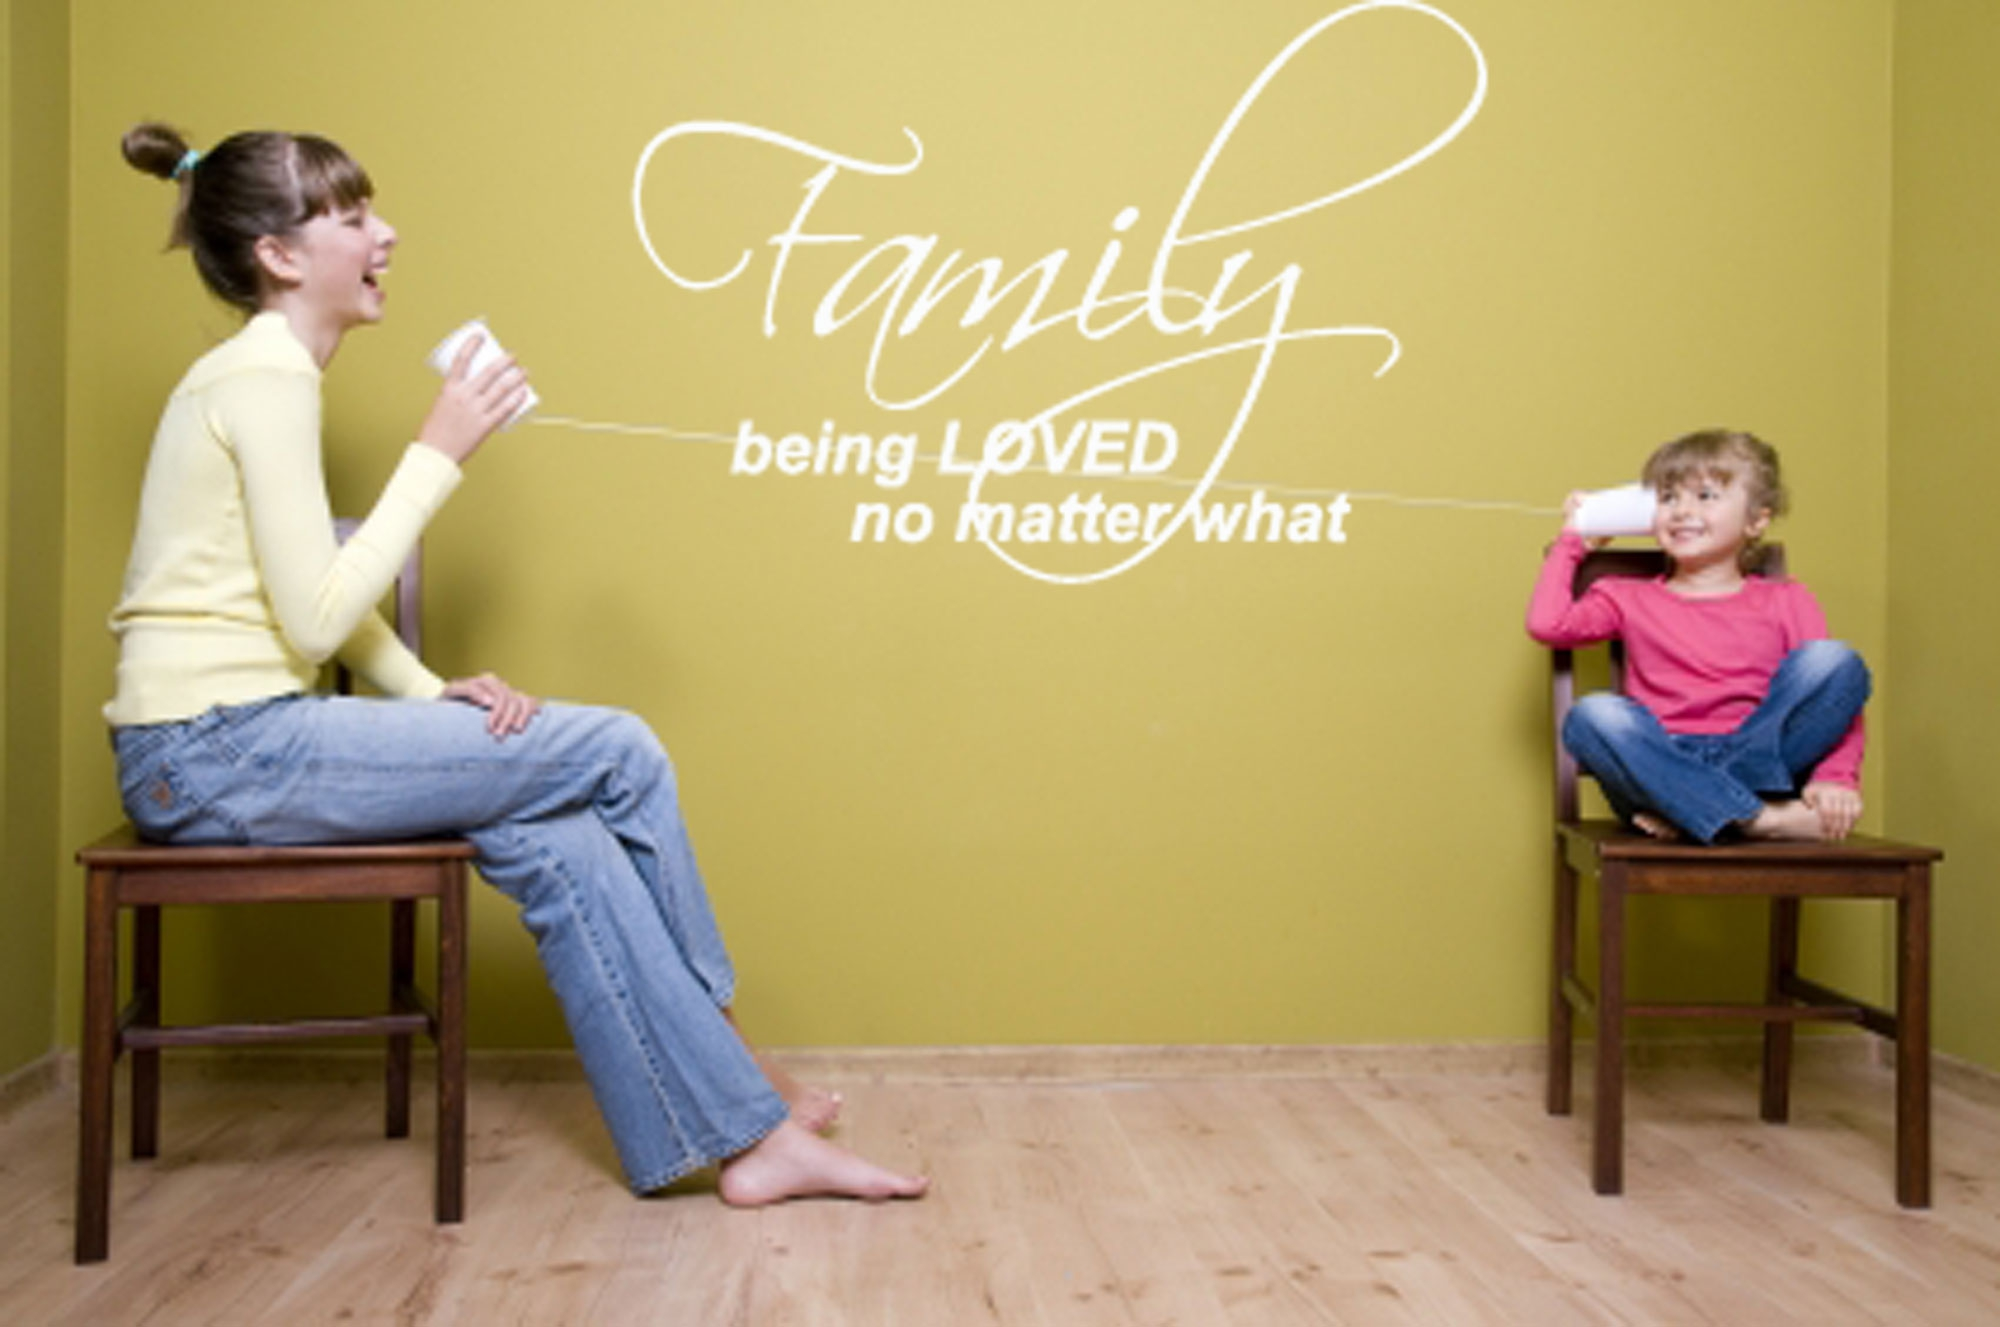 FAMILY BEING LOVED NO MATTER WHAT WALL LIVING ROOM DECAL STICKER ...